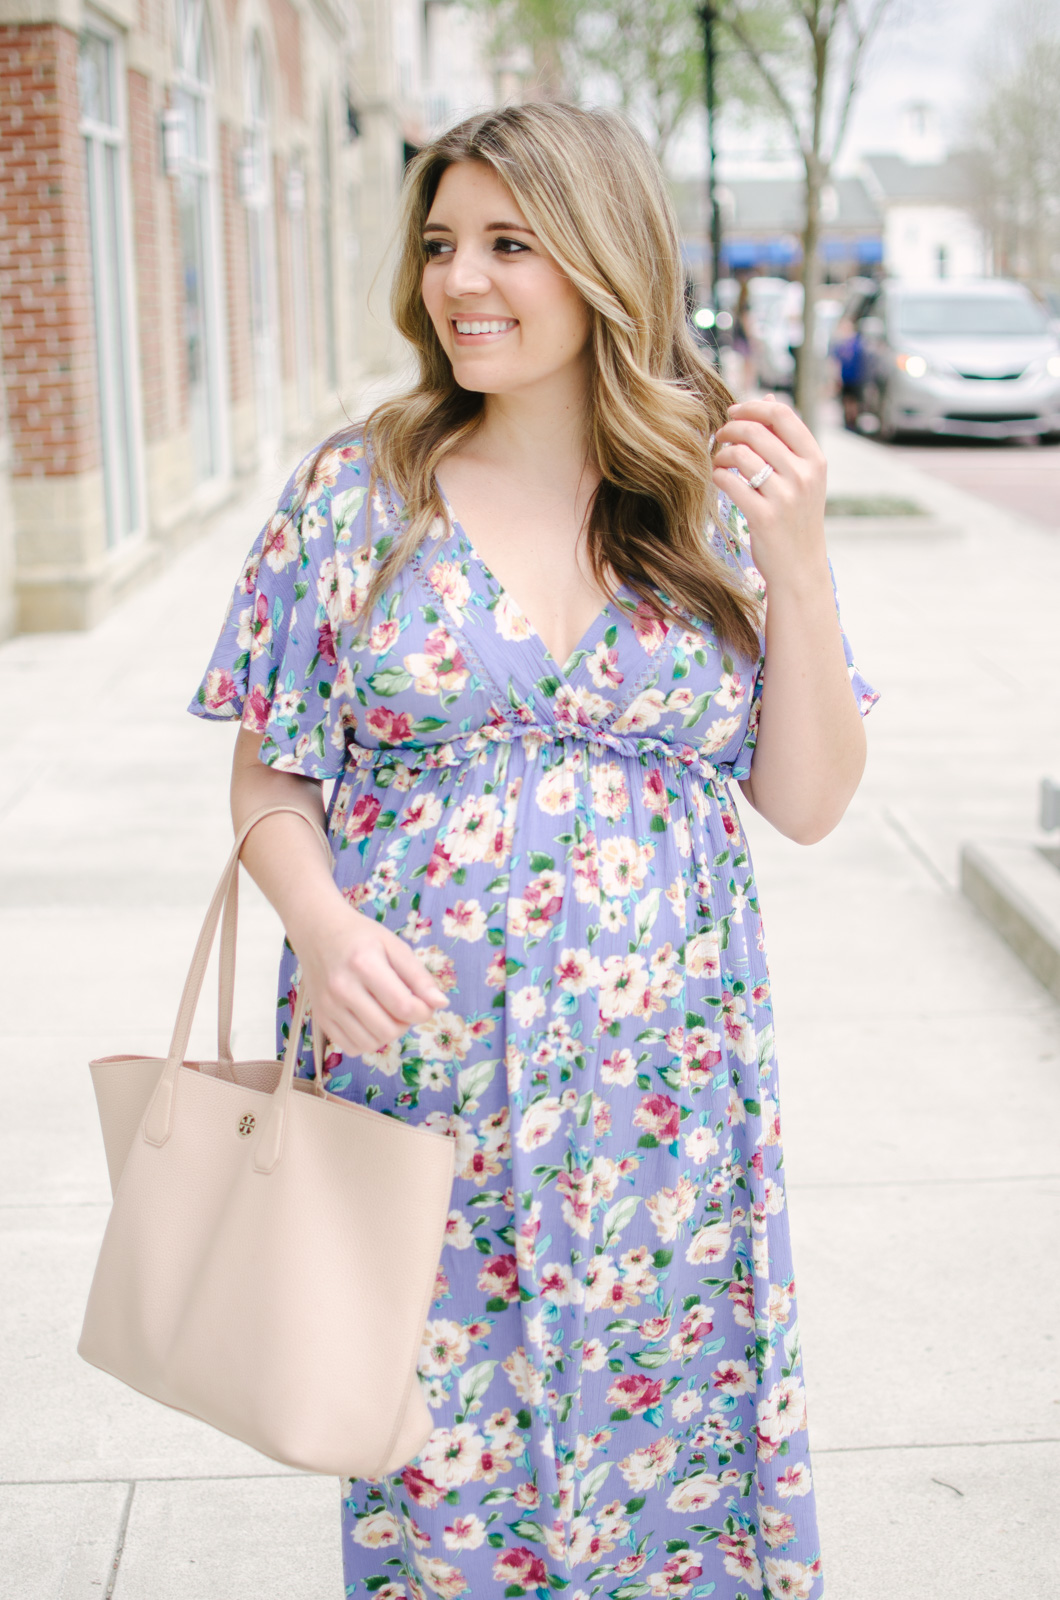 floral maxi dress maternity - spring maternity outfit | bylaurenm.com